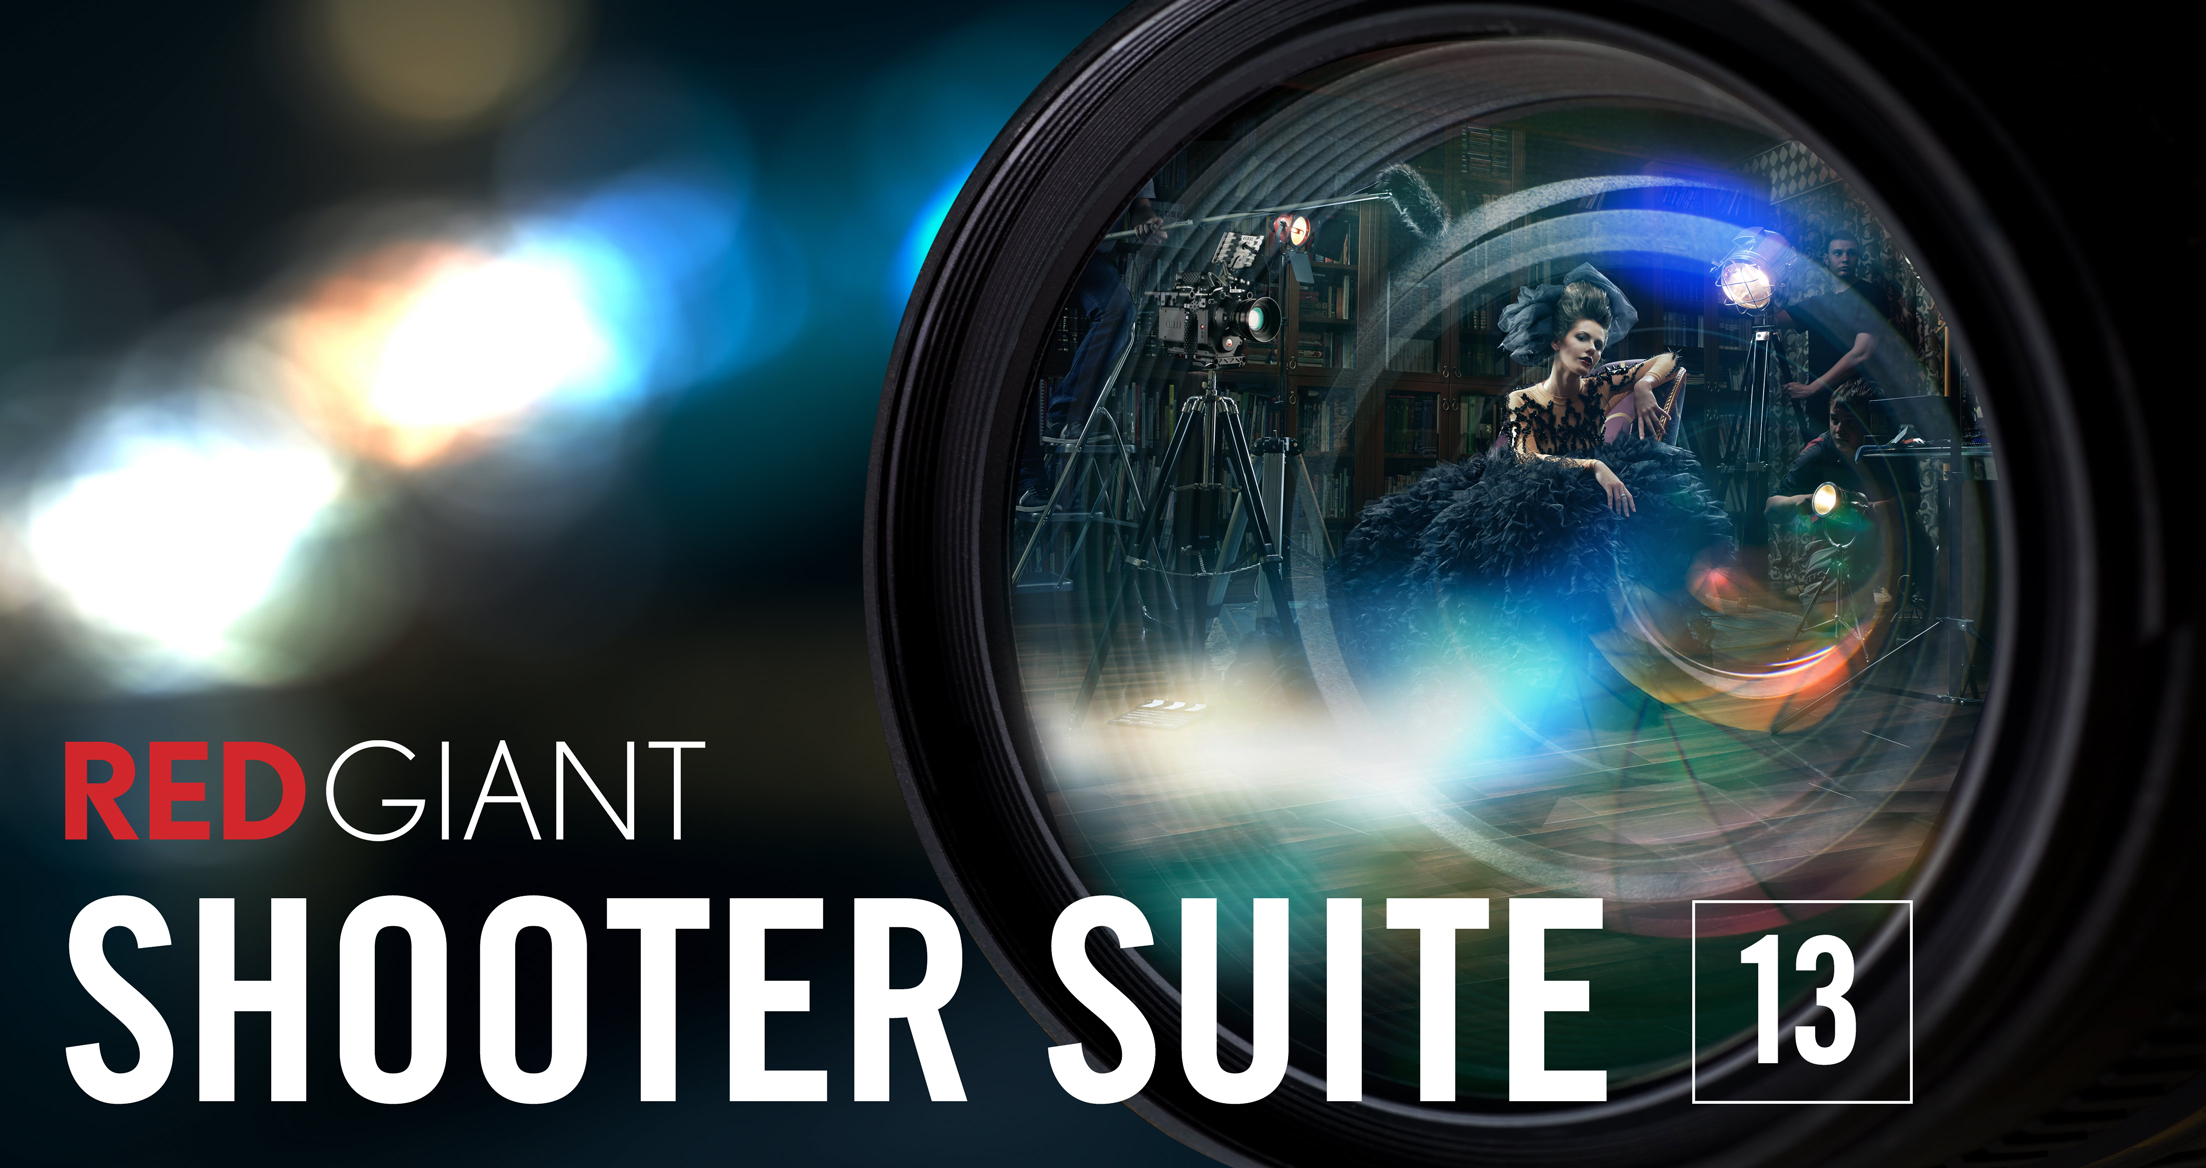 Red Giant Shooter Suite 13 64 Bit Free Download